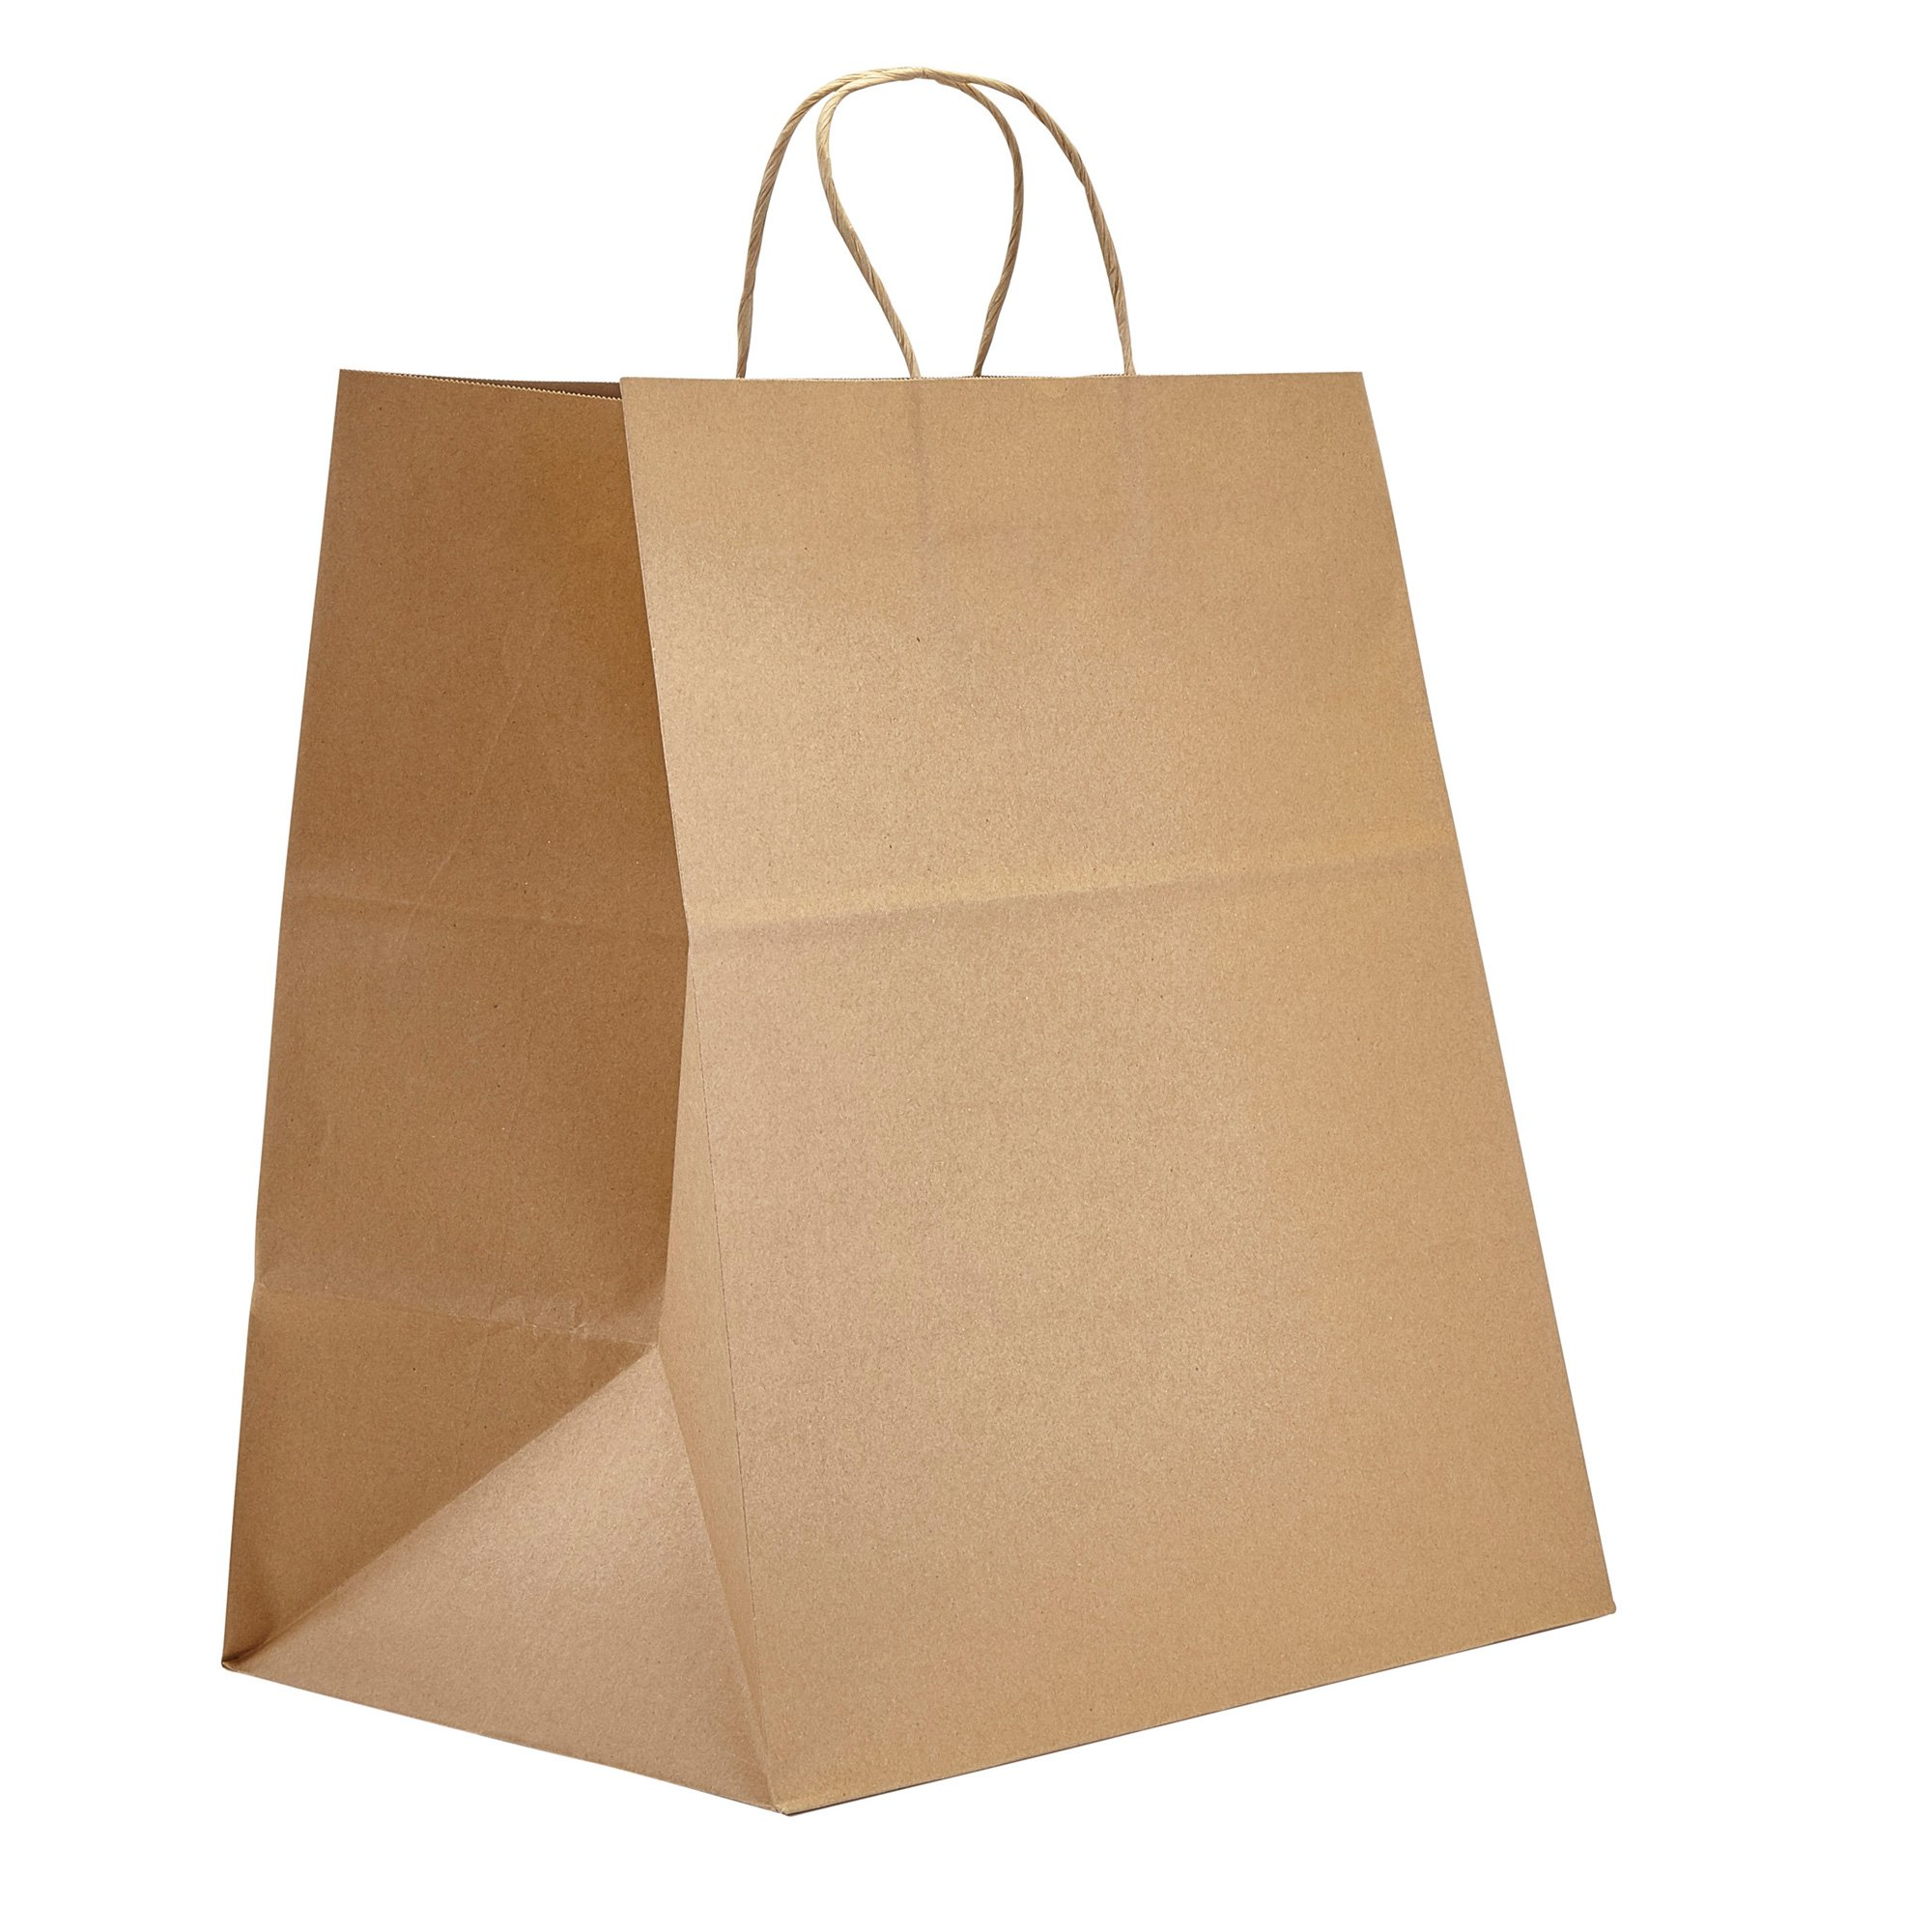 PTP - 14'' x 9.75'' x 15.5'' Natural Kraft Paper Gift Tote Bags - 200 count| Perfect for Birthdays, Weddings, Holidays and All Occasions | White or Natural Colors | Multiple Sizes